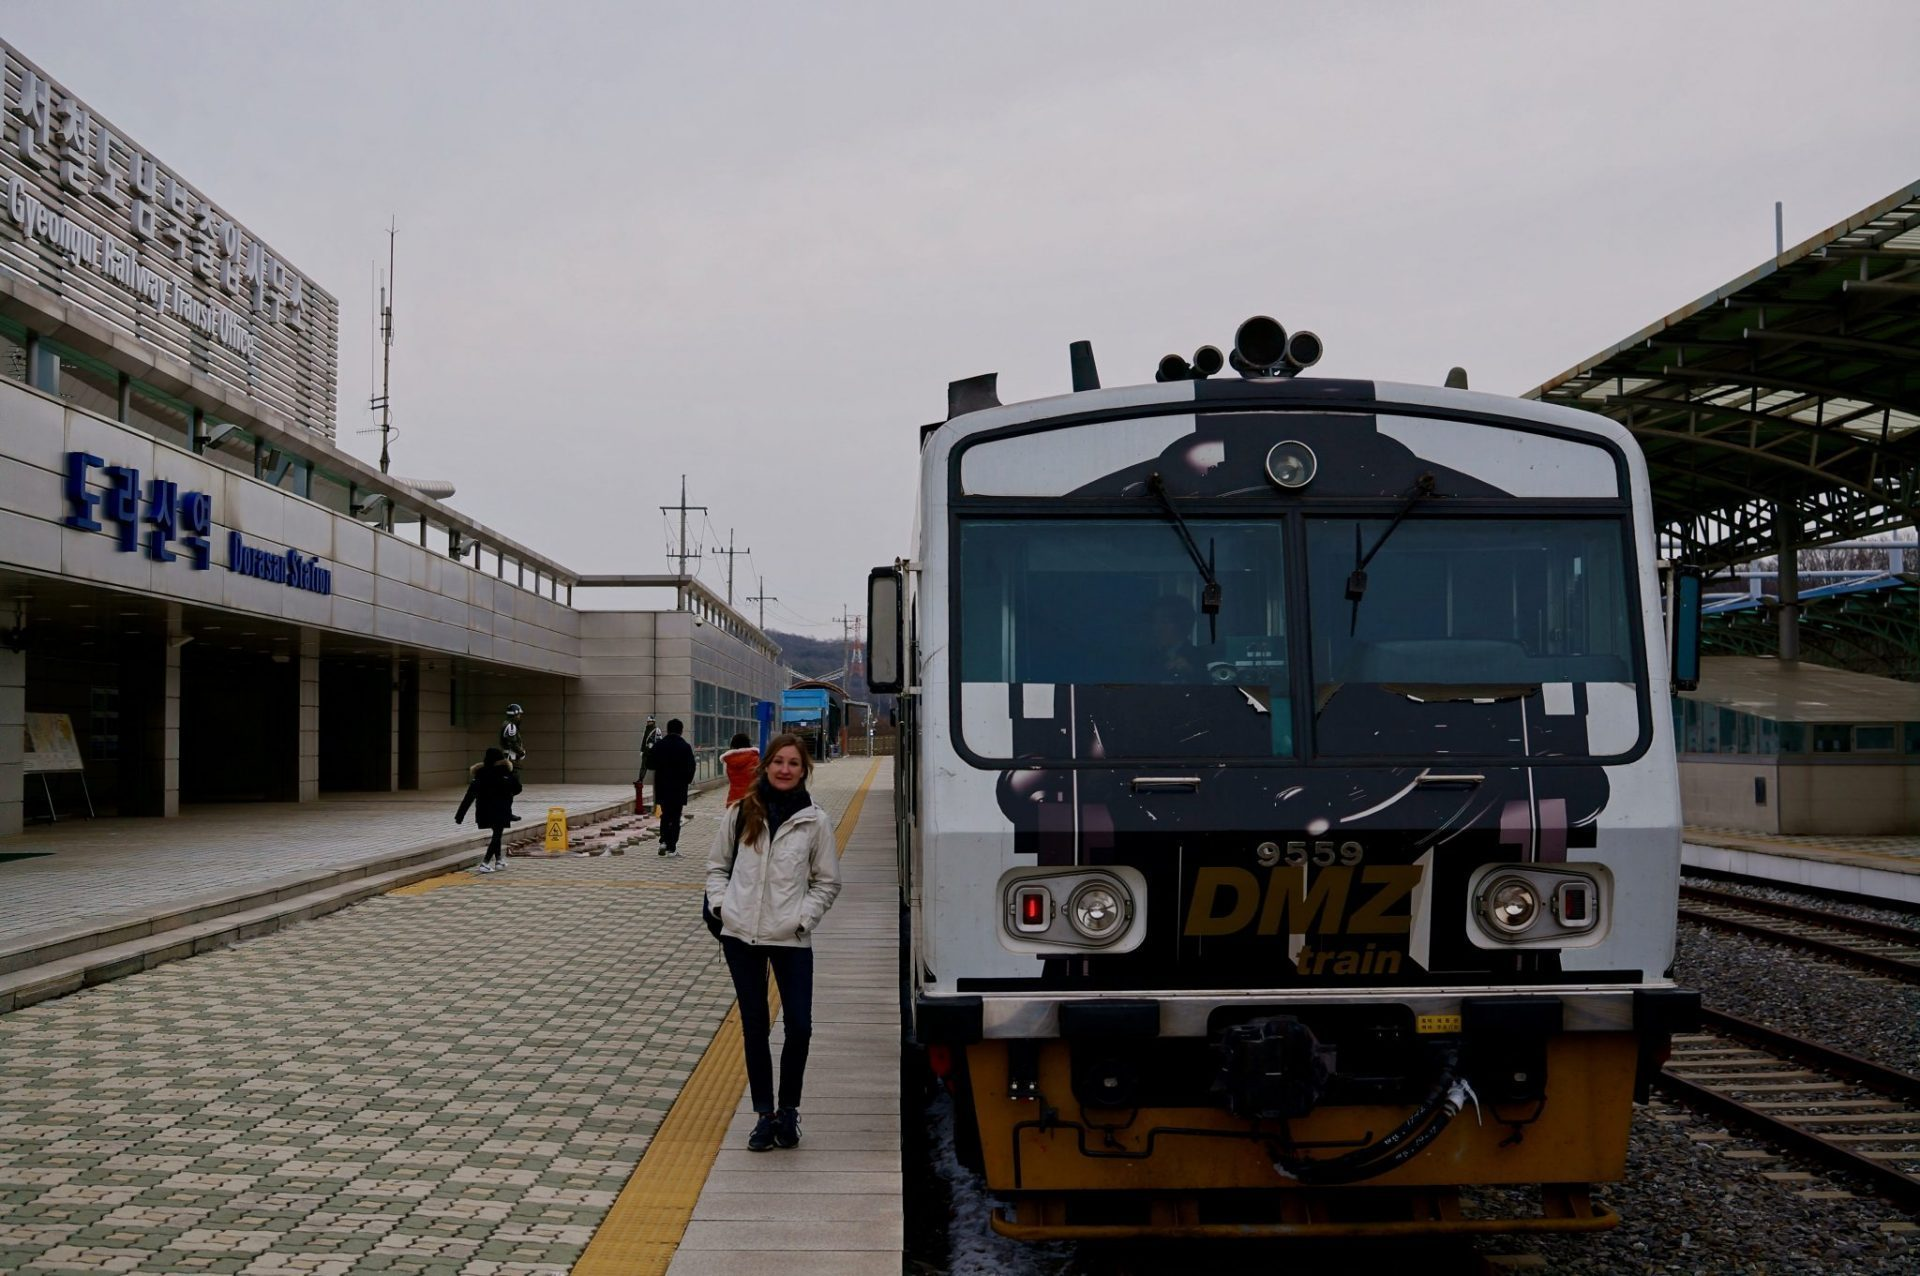 The DMZ Train: How To Travel from Seoul to North Korea Border 🚂